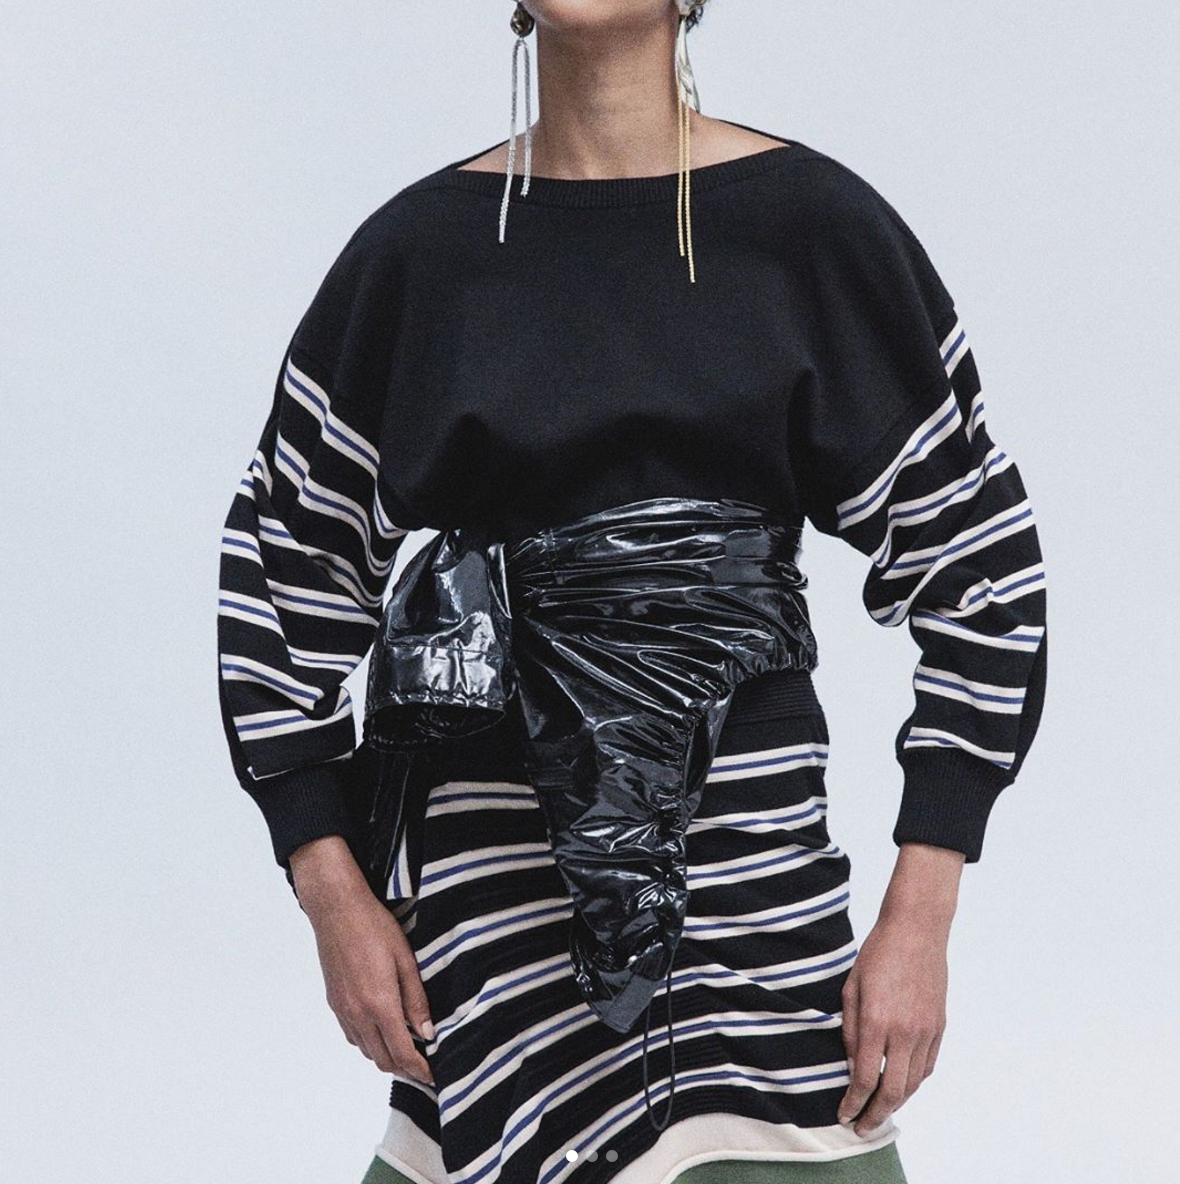 Fashion designer Phillip Lim used recycled plastic in his latest collection, and it totally works